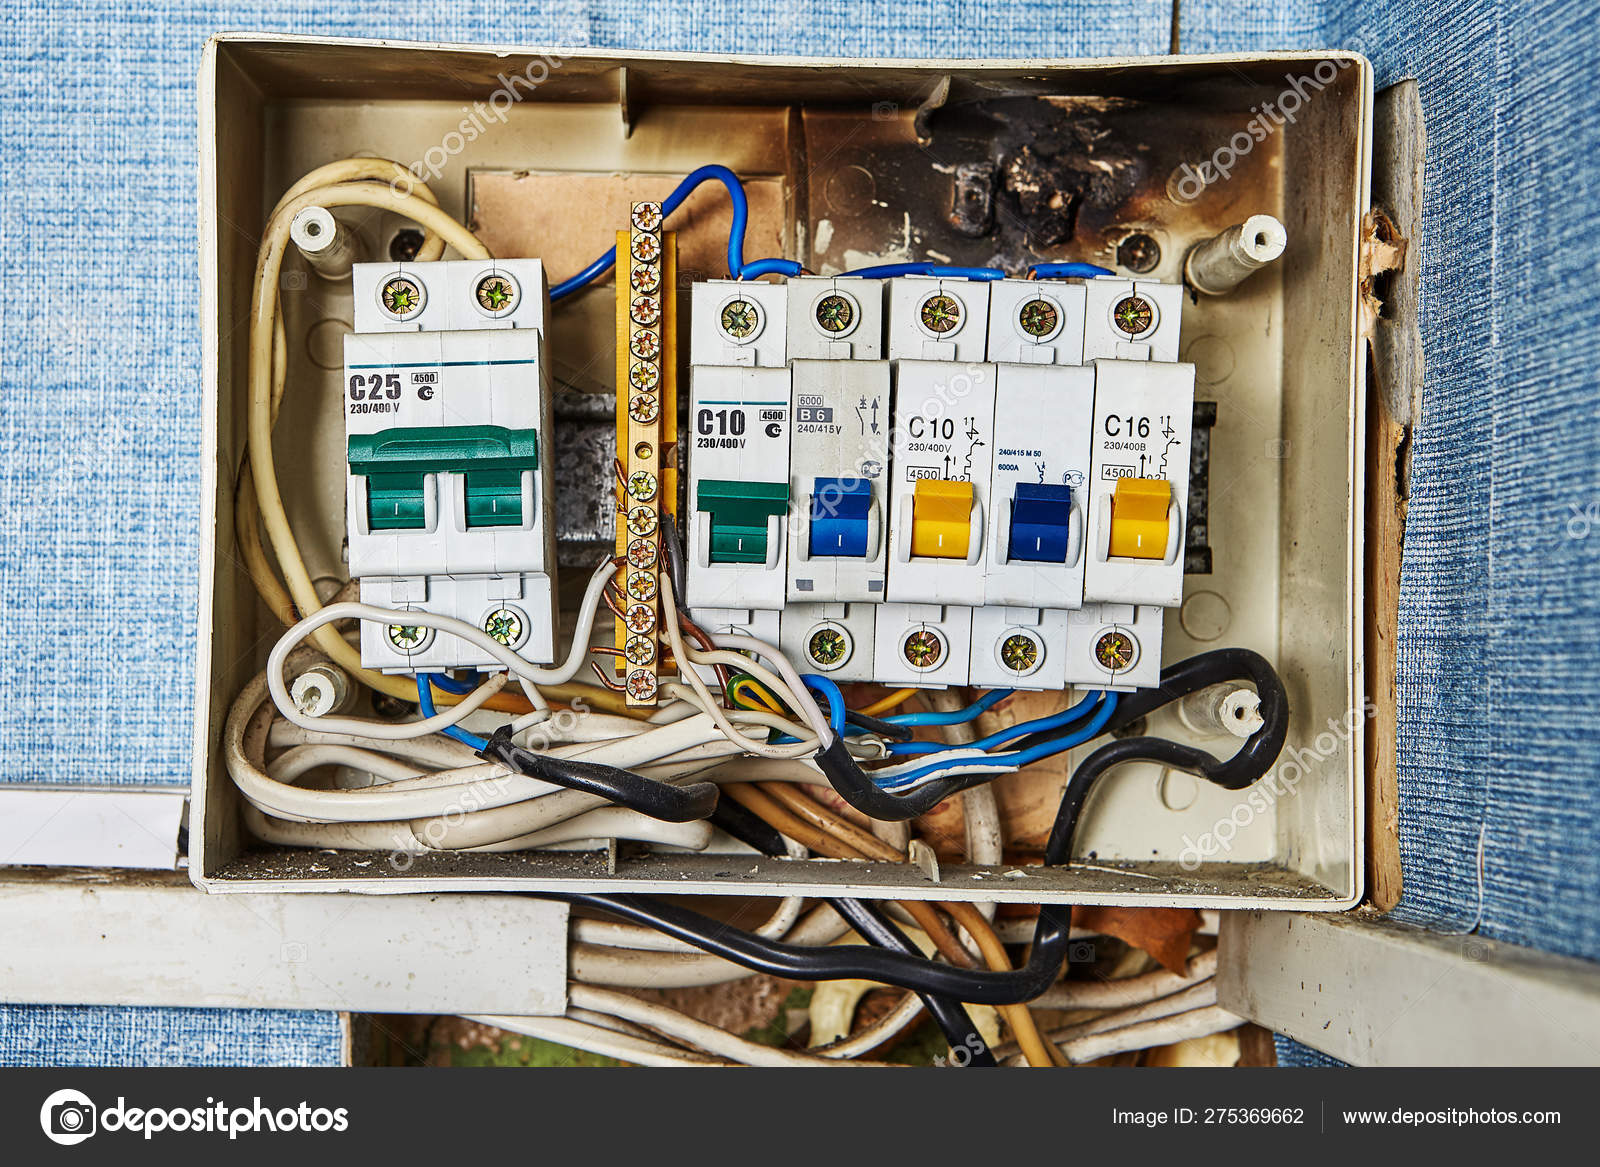 Burned out old home fuse box parts. – Stock Editorial Photo ... on old home antenna, old home generator, old home gas tank, old home front door,